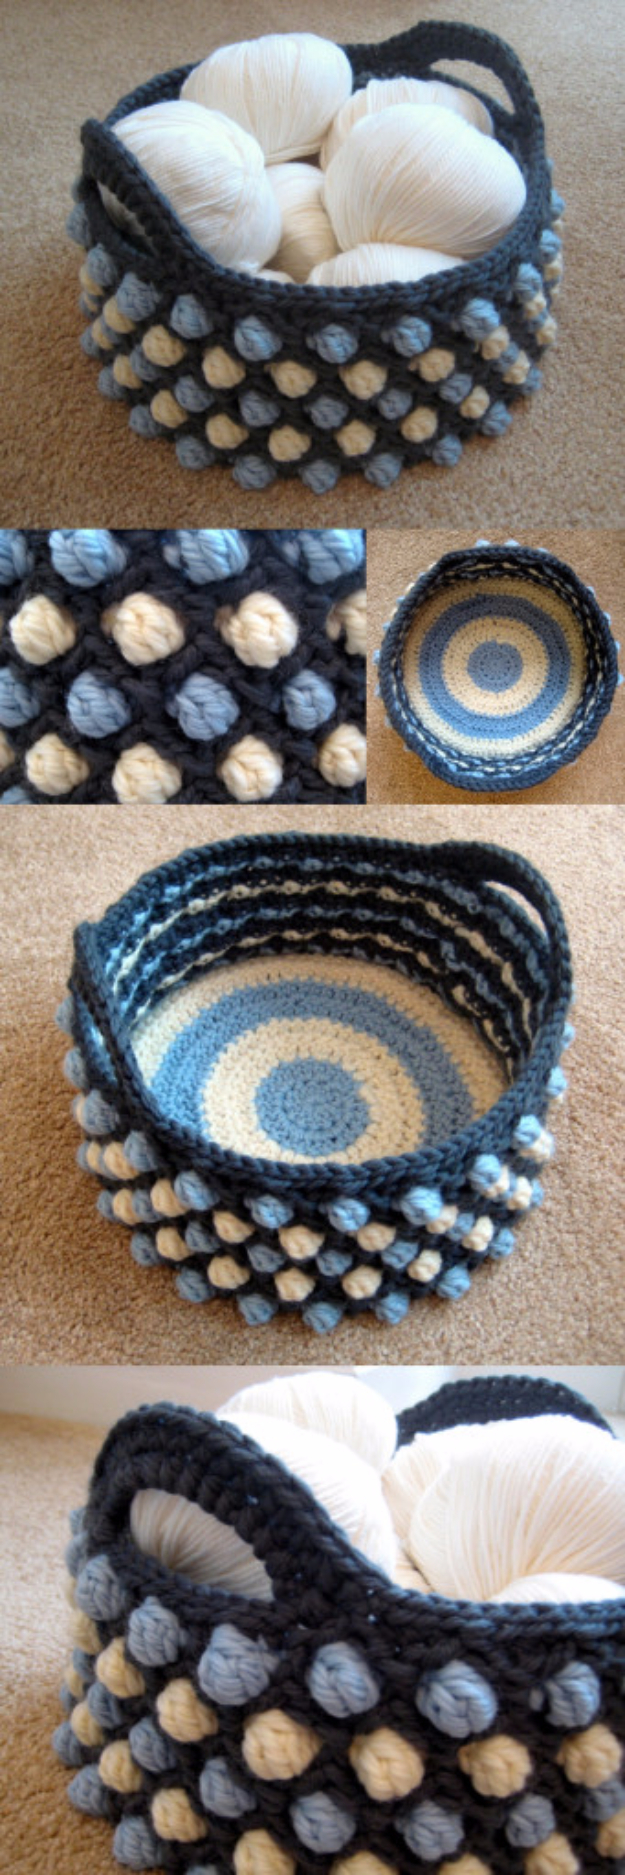 38 Easy Knitting Ideas - Honeycomb Pop Basket - Knitting Ideas For Beginners, Cute Kinitting Projects, Knitting Ideas And Patterns, Easy Knitting Crafts, Gifts You Can Knit#diy #knitting